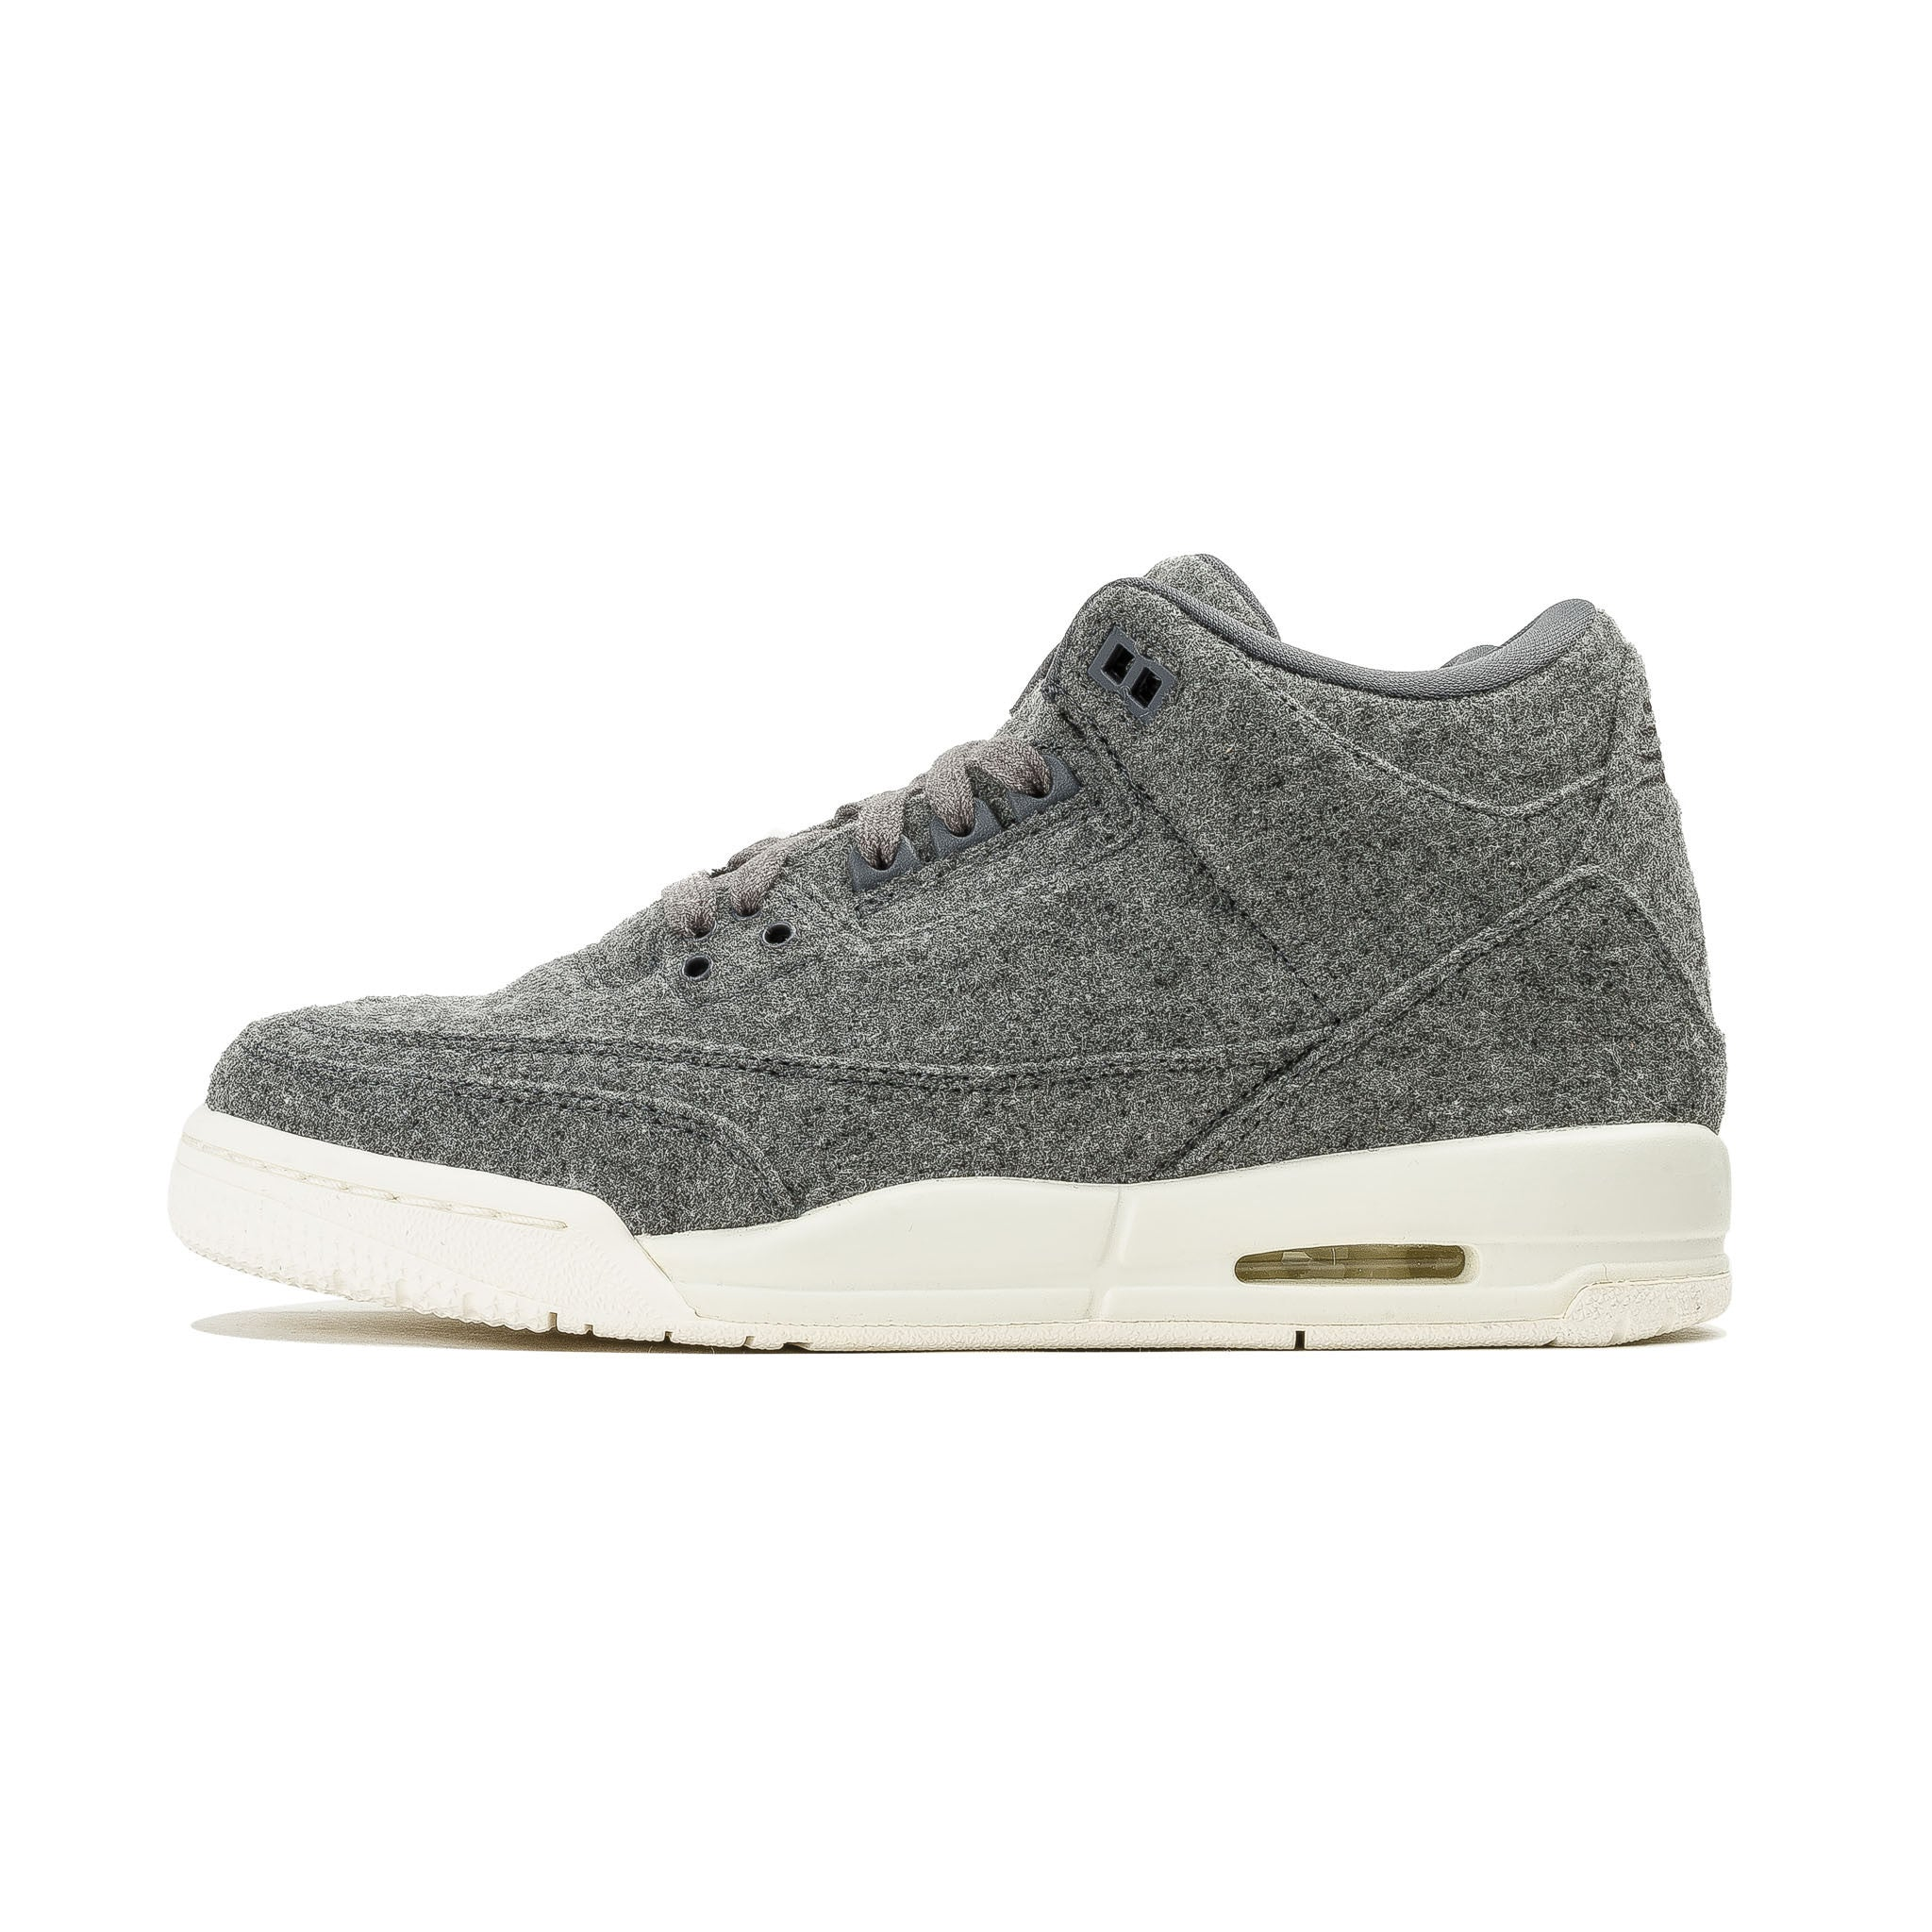 Air Jordan 3 Wool BG 861427-004